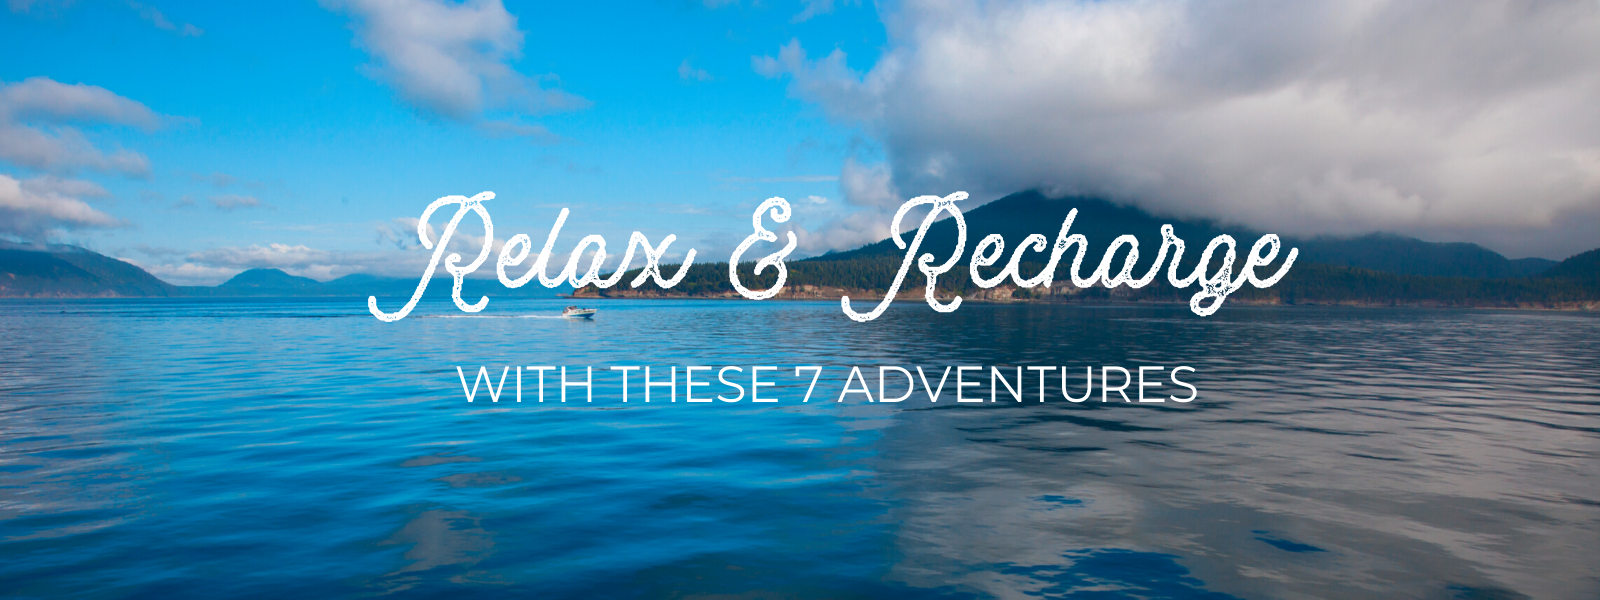 Photo of the San Juan Islands with text overlay: Relax and recharge with these 7 adventures